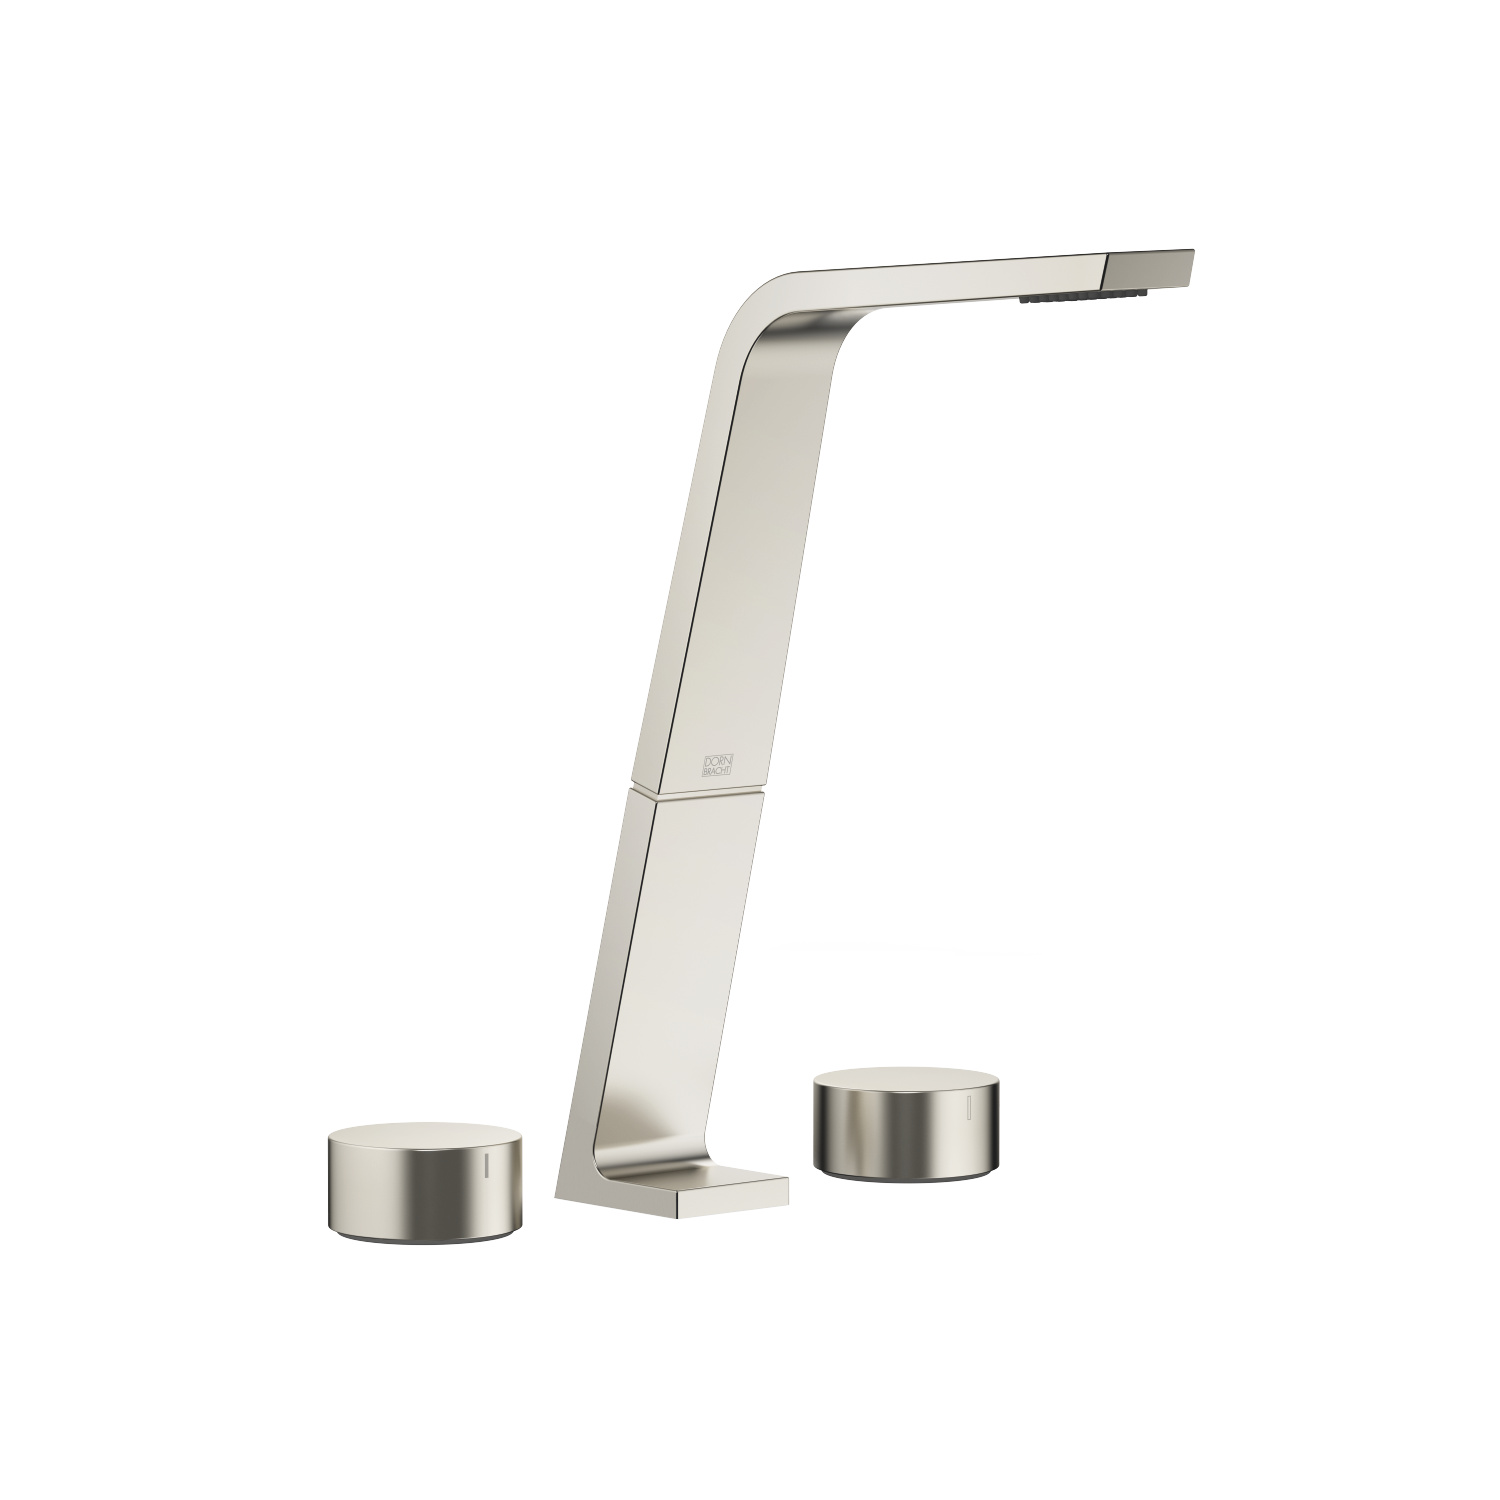 Three-hole lavatory mixer without drain - platinum matte - 13 717 705-06 + 20 000 740-06 + 20 000 741-06